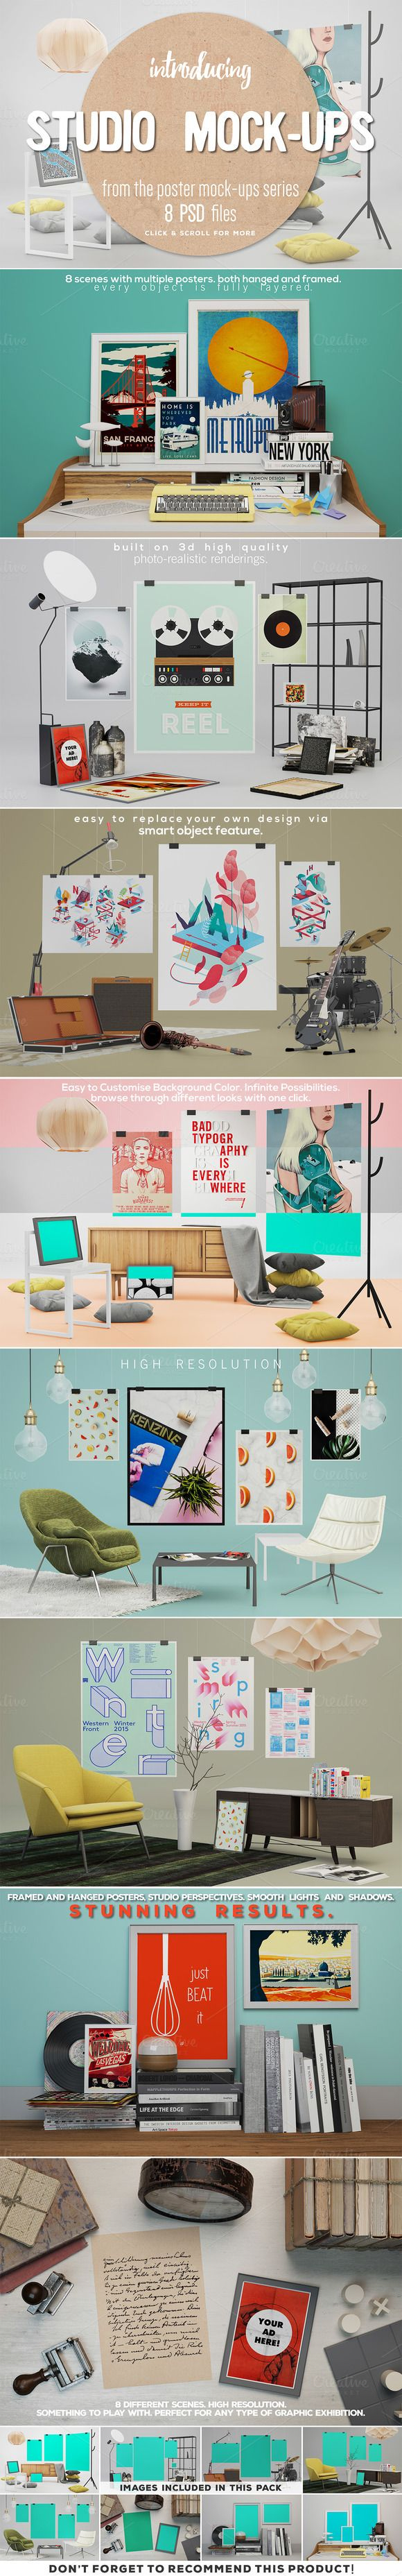 8 Studio Poster Mock-ups by DESIGNbook on Creative Market